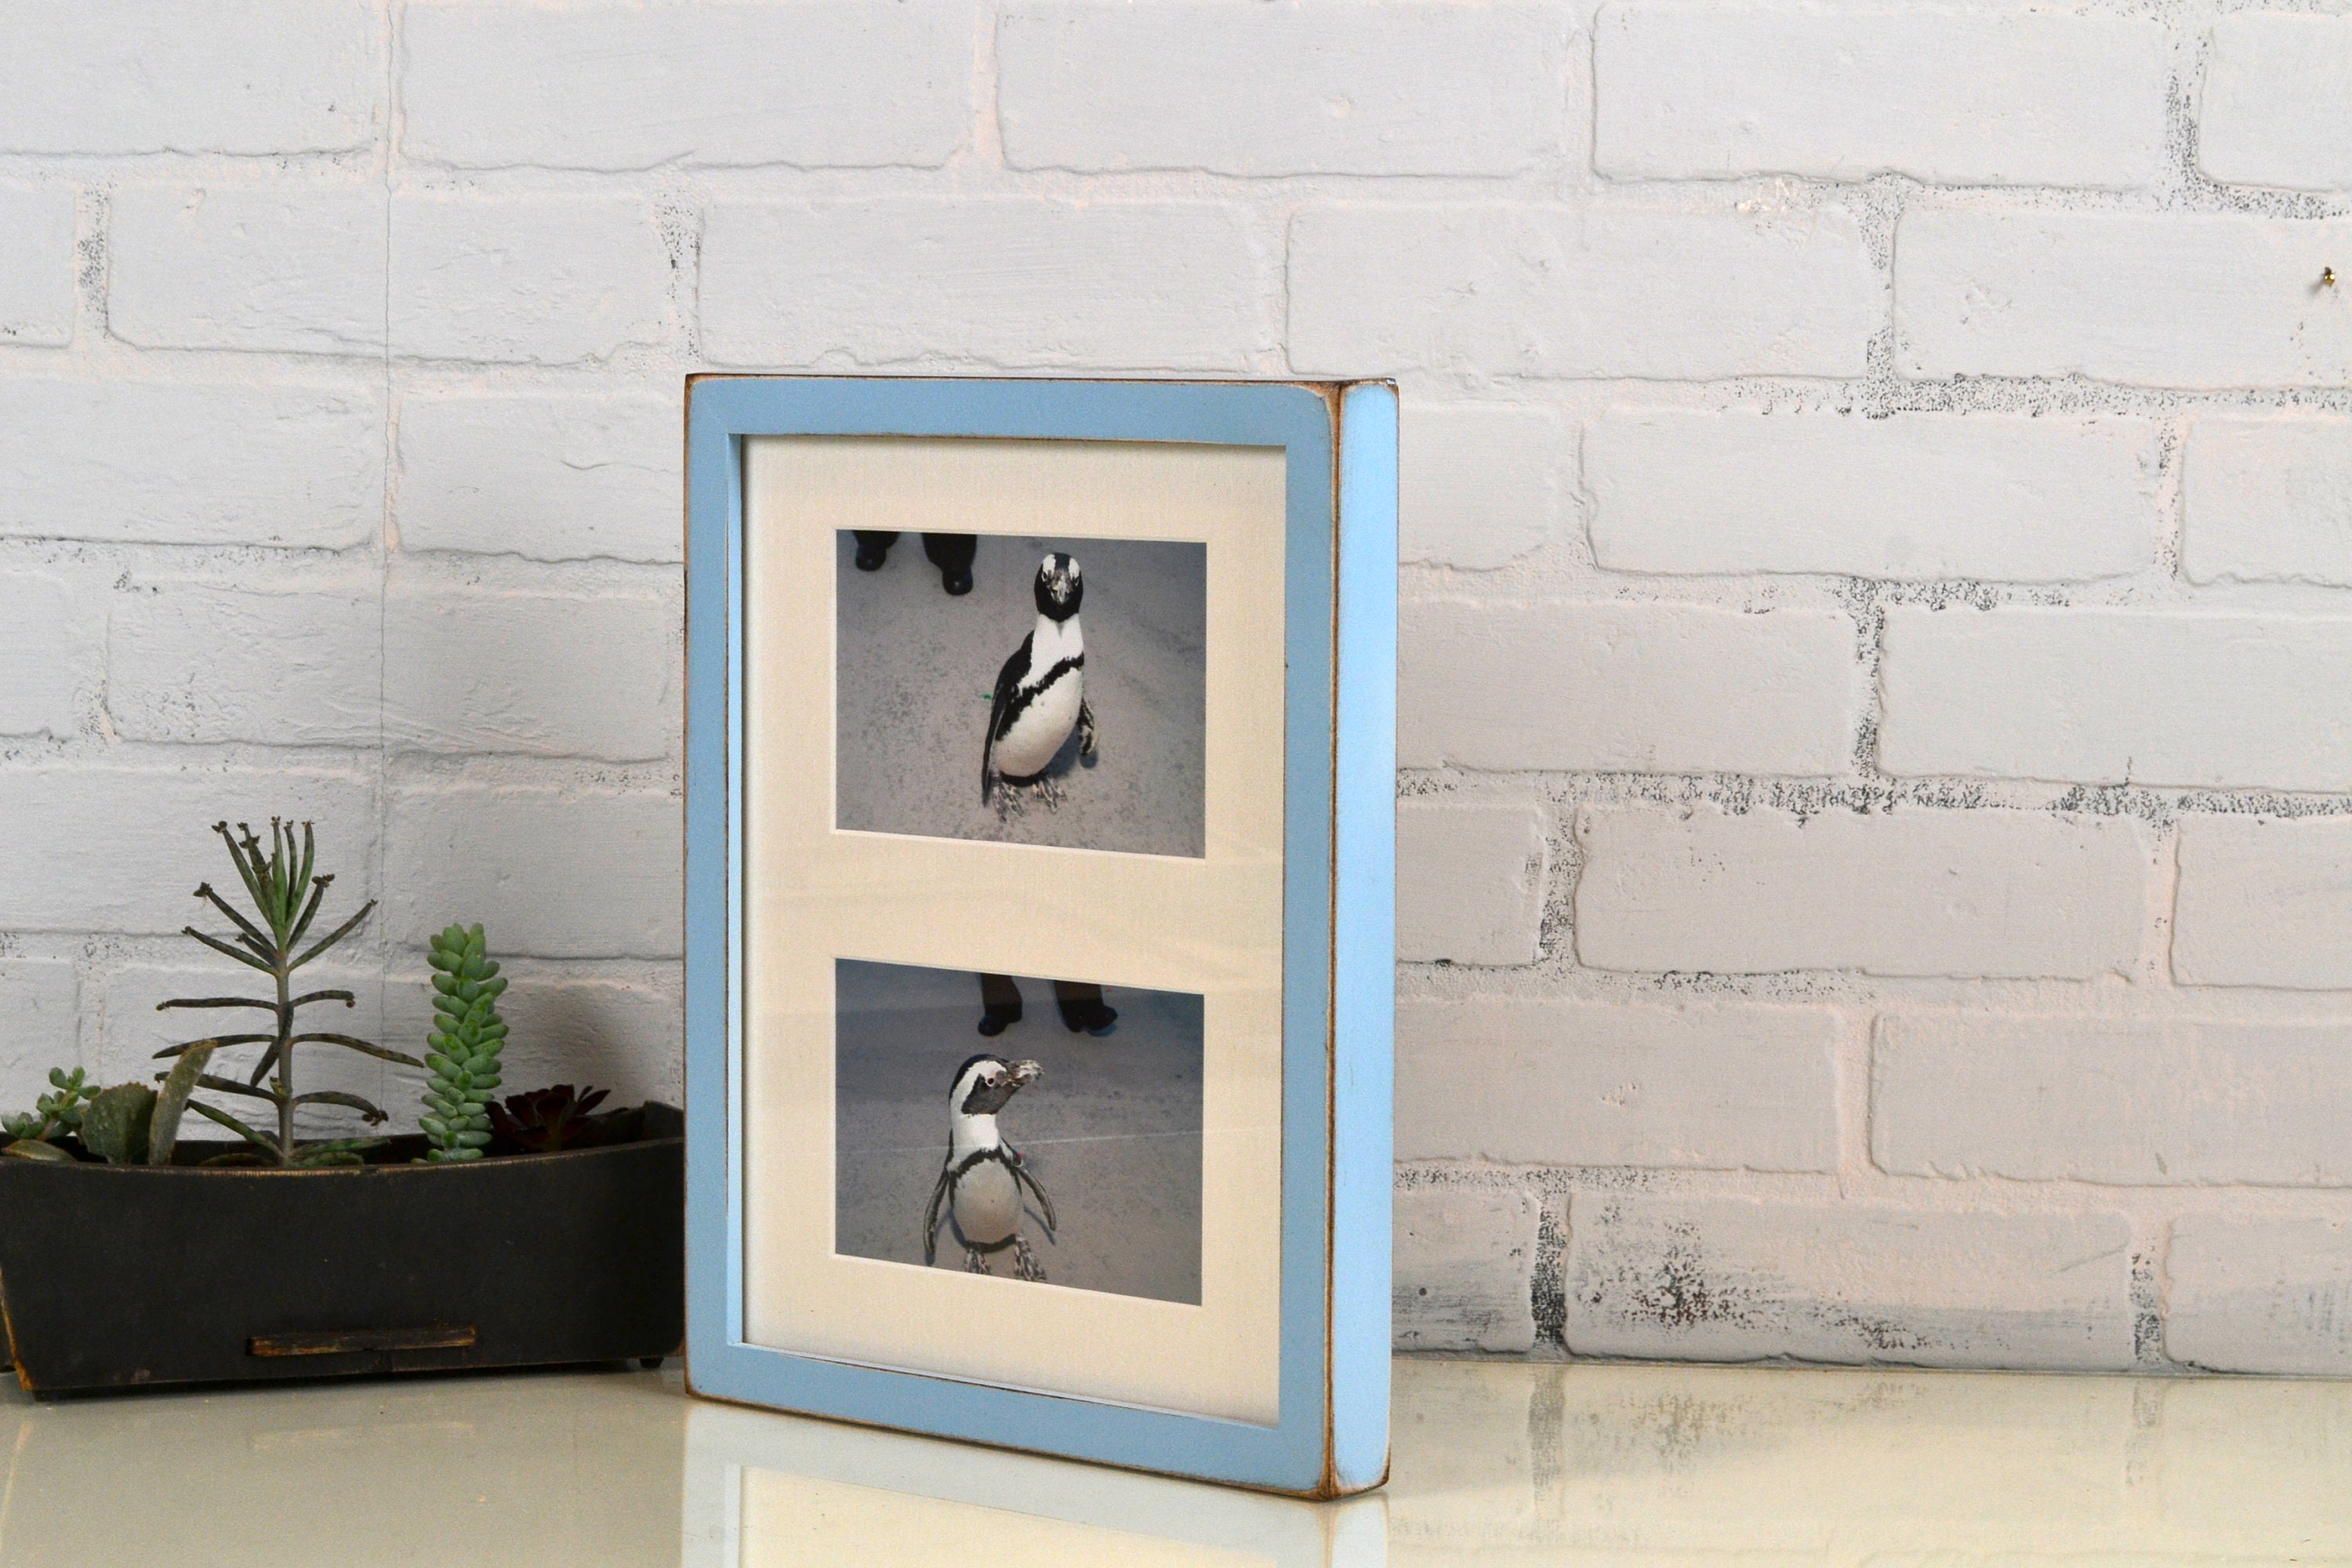 9x12 Picture Frame Mat Windows fit (2) 4x6 OR (2) 5x7 Photos in Deep ...